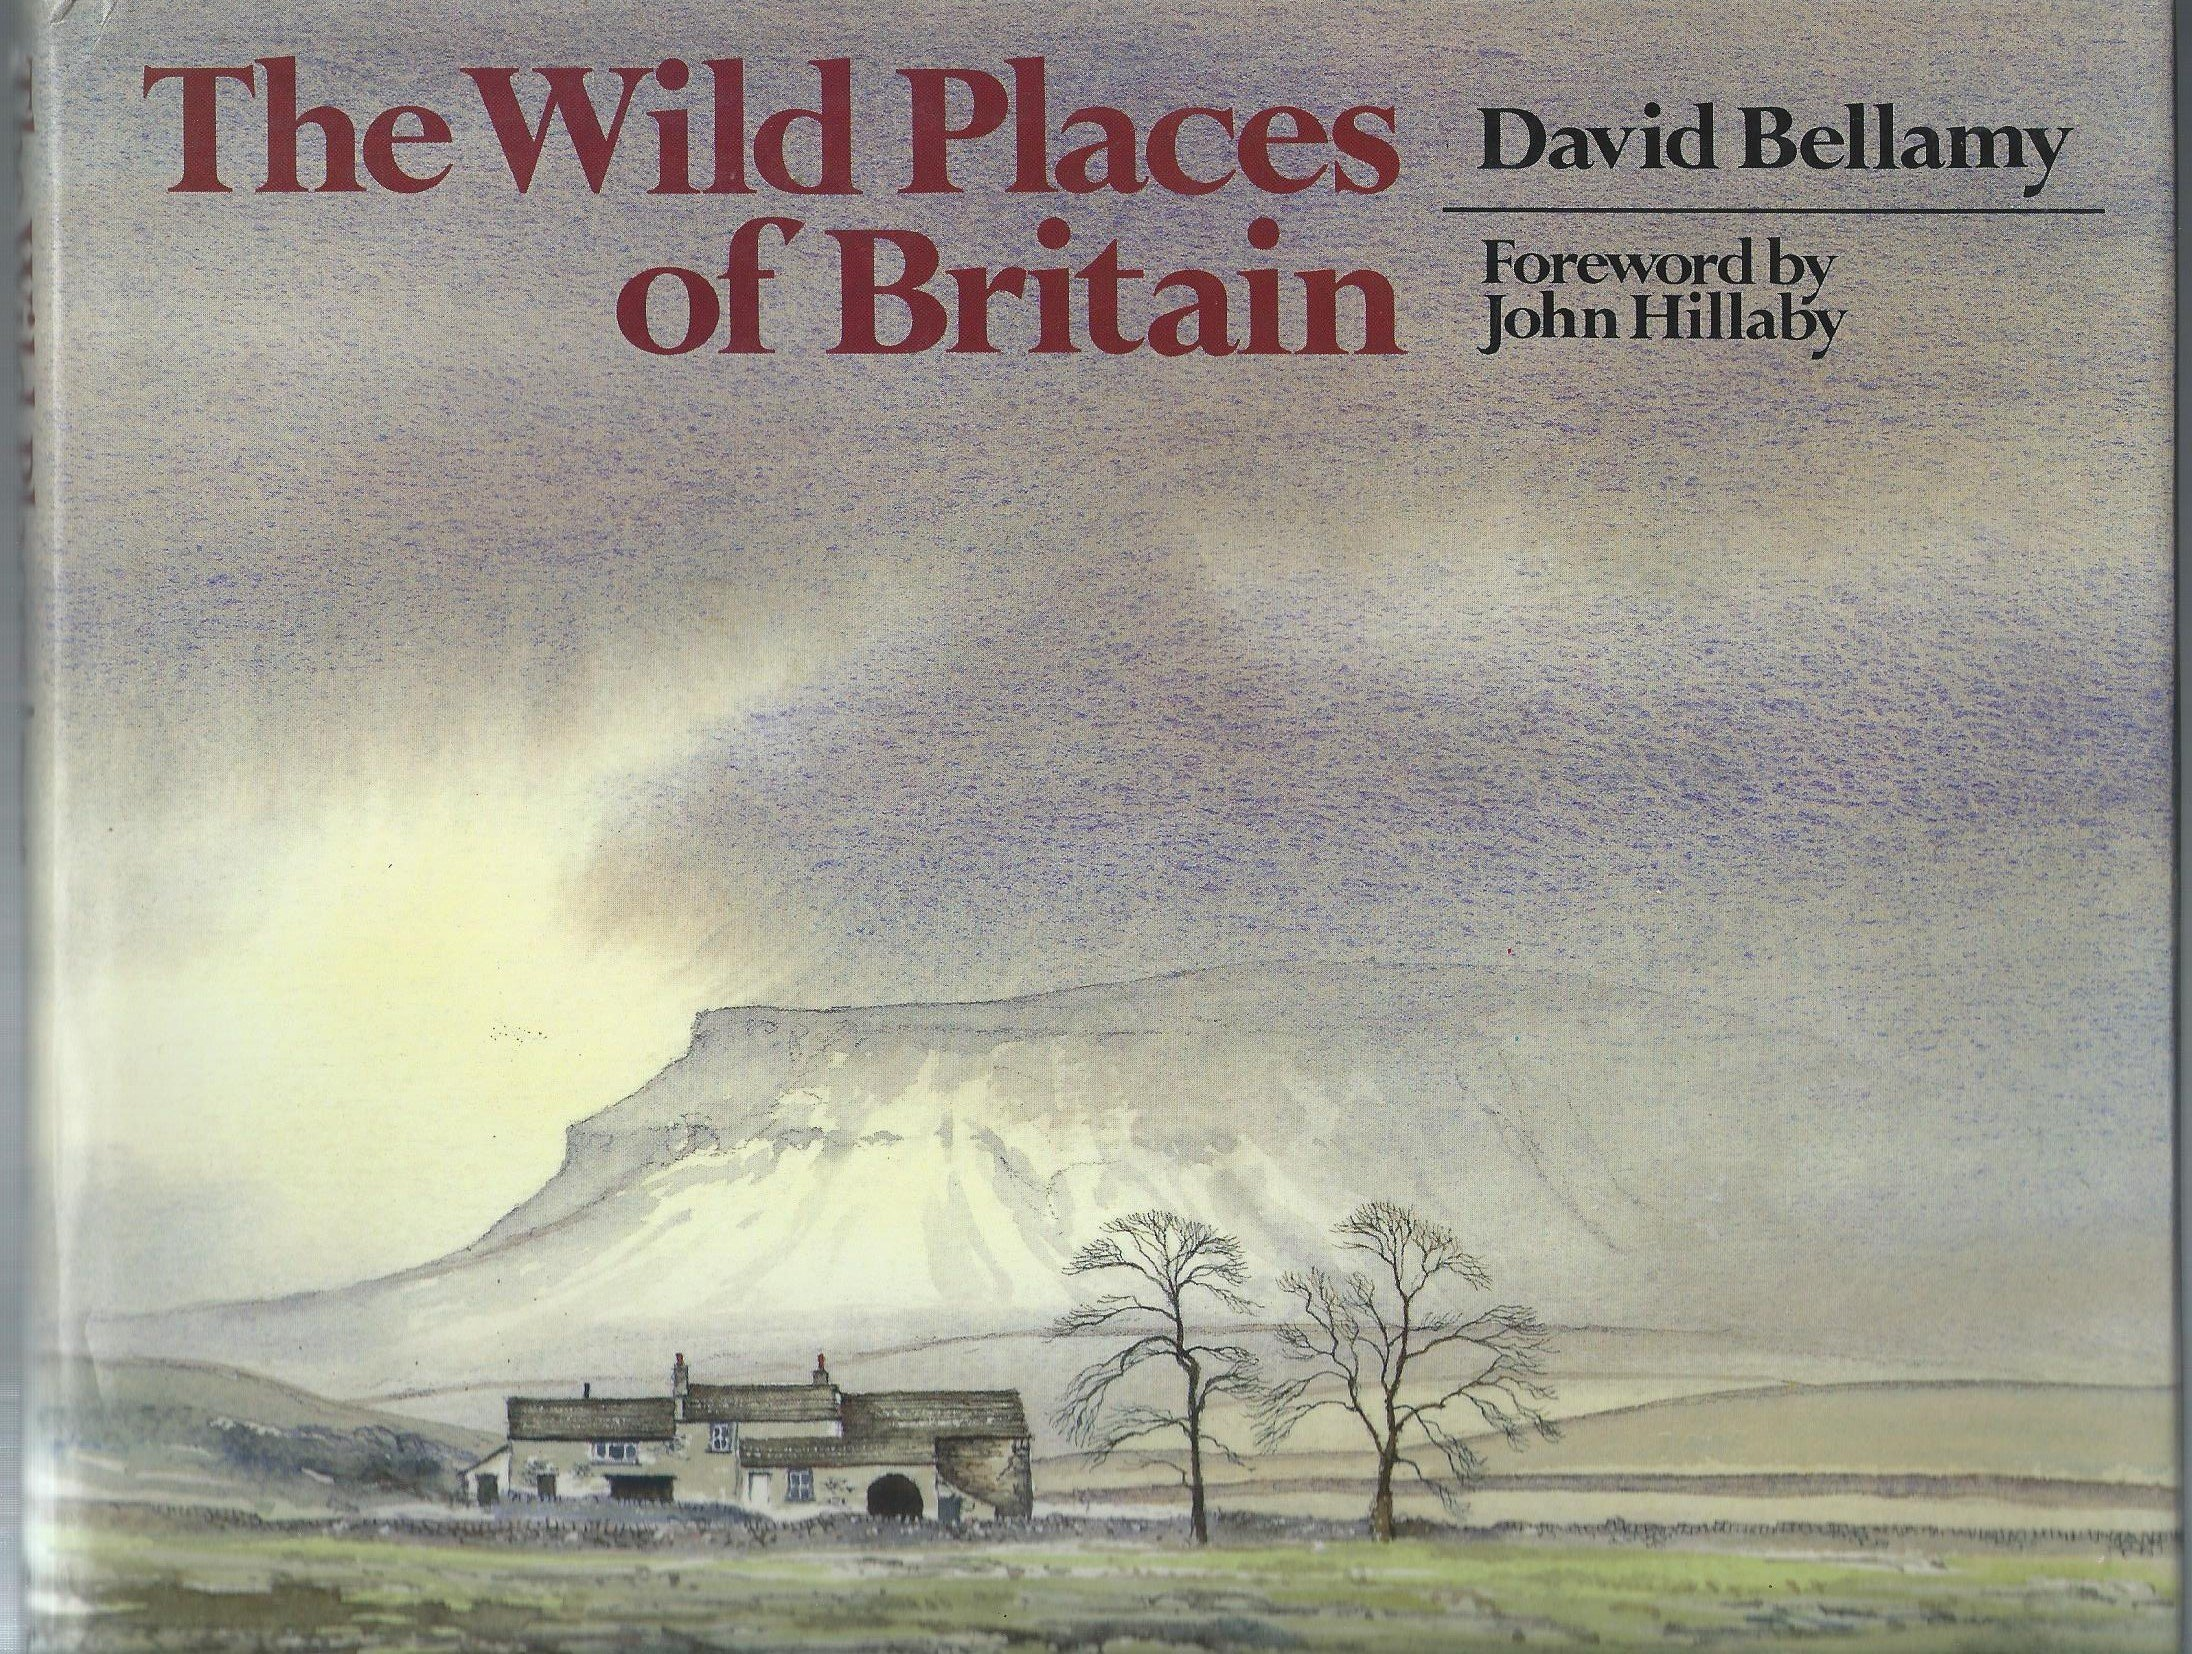 The Wild Places of Britain